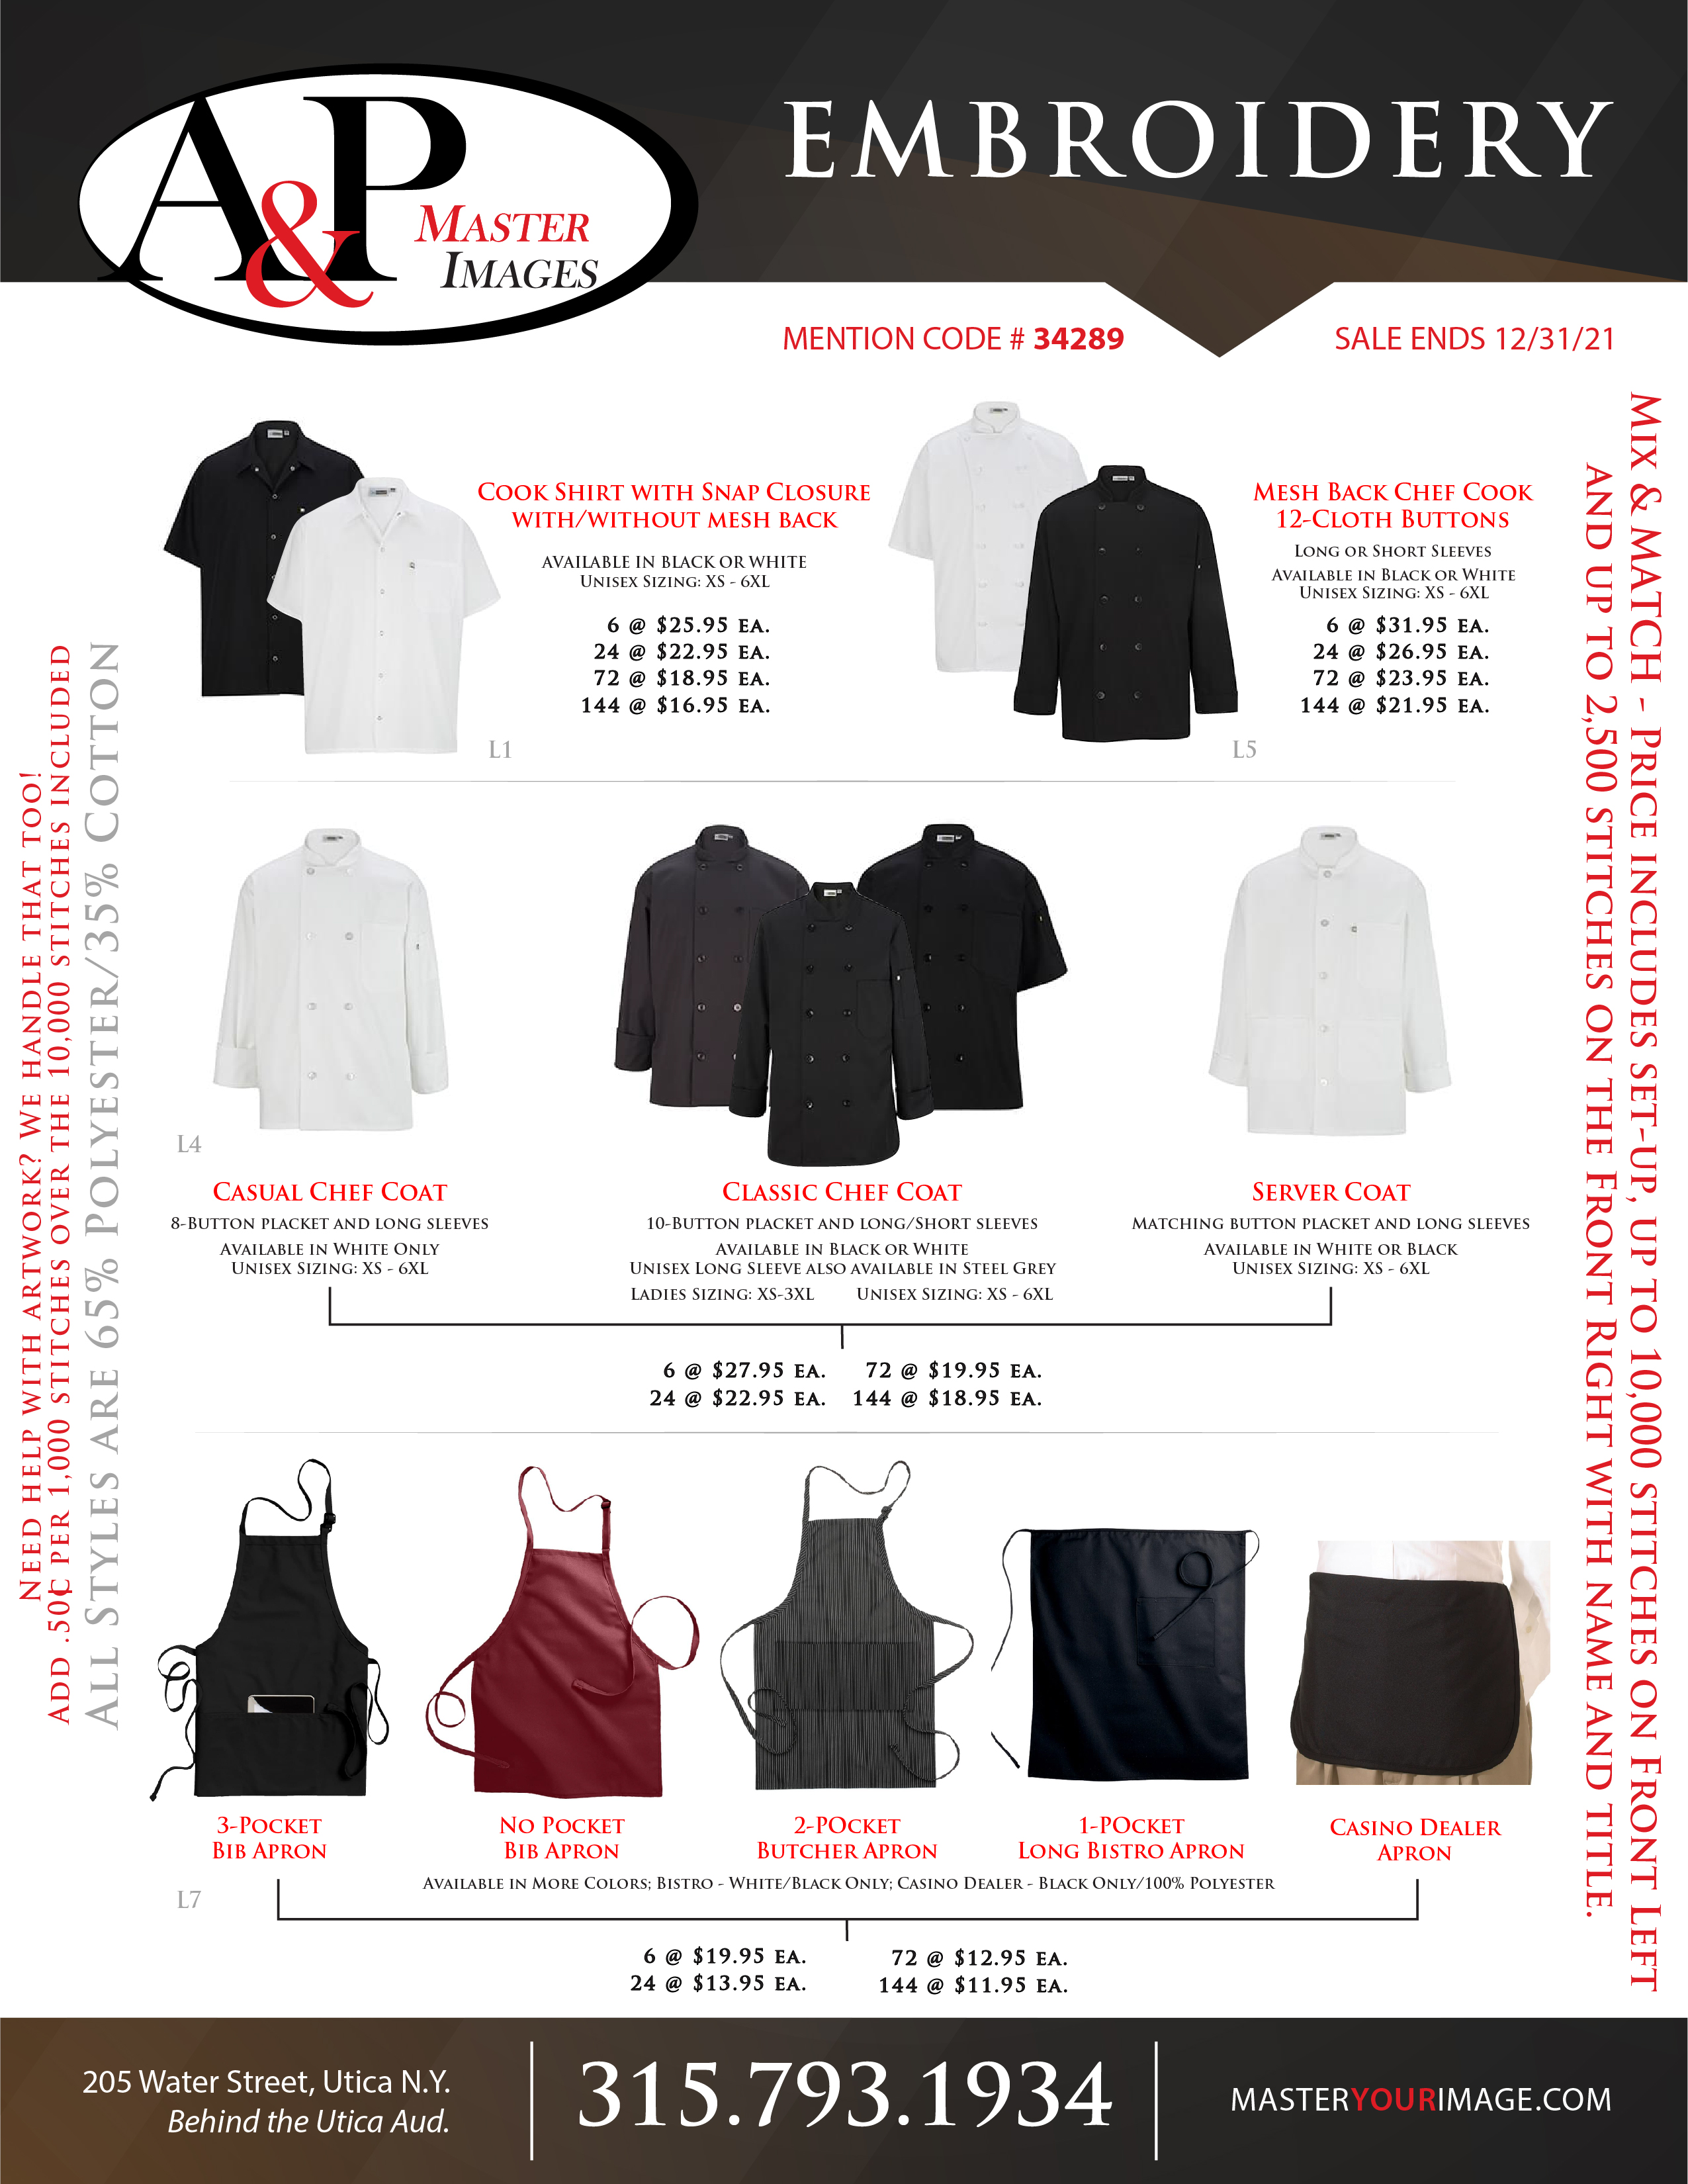 Sales Flyers - Embroidery - 12